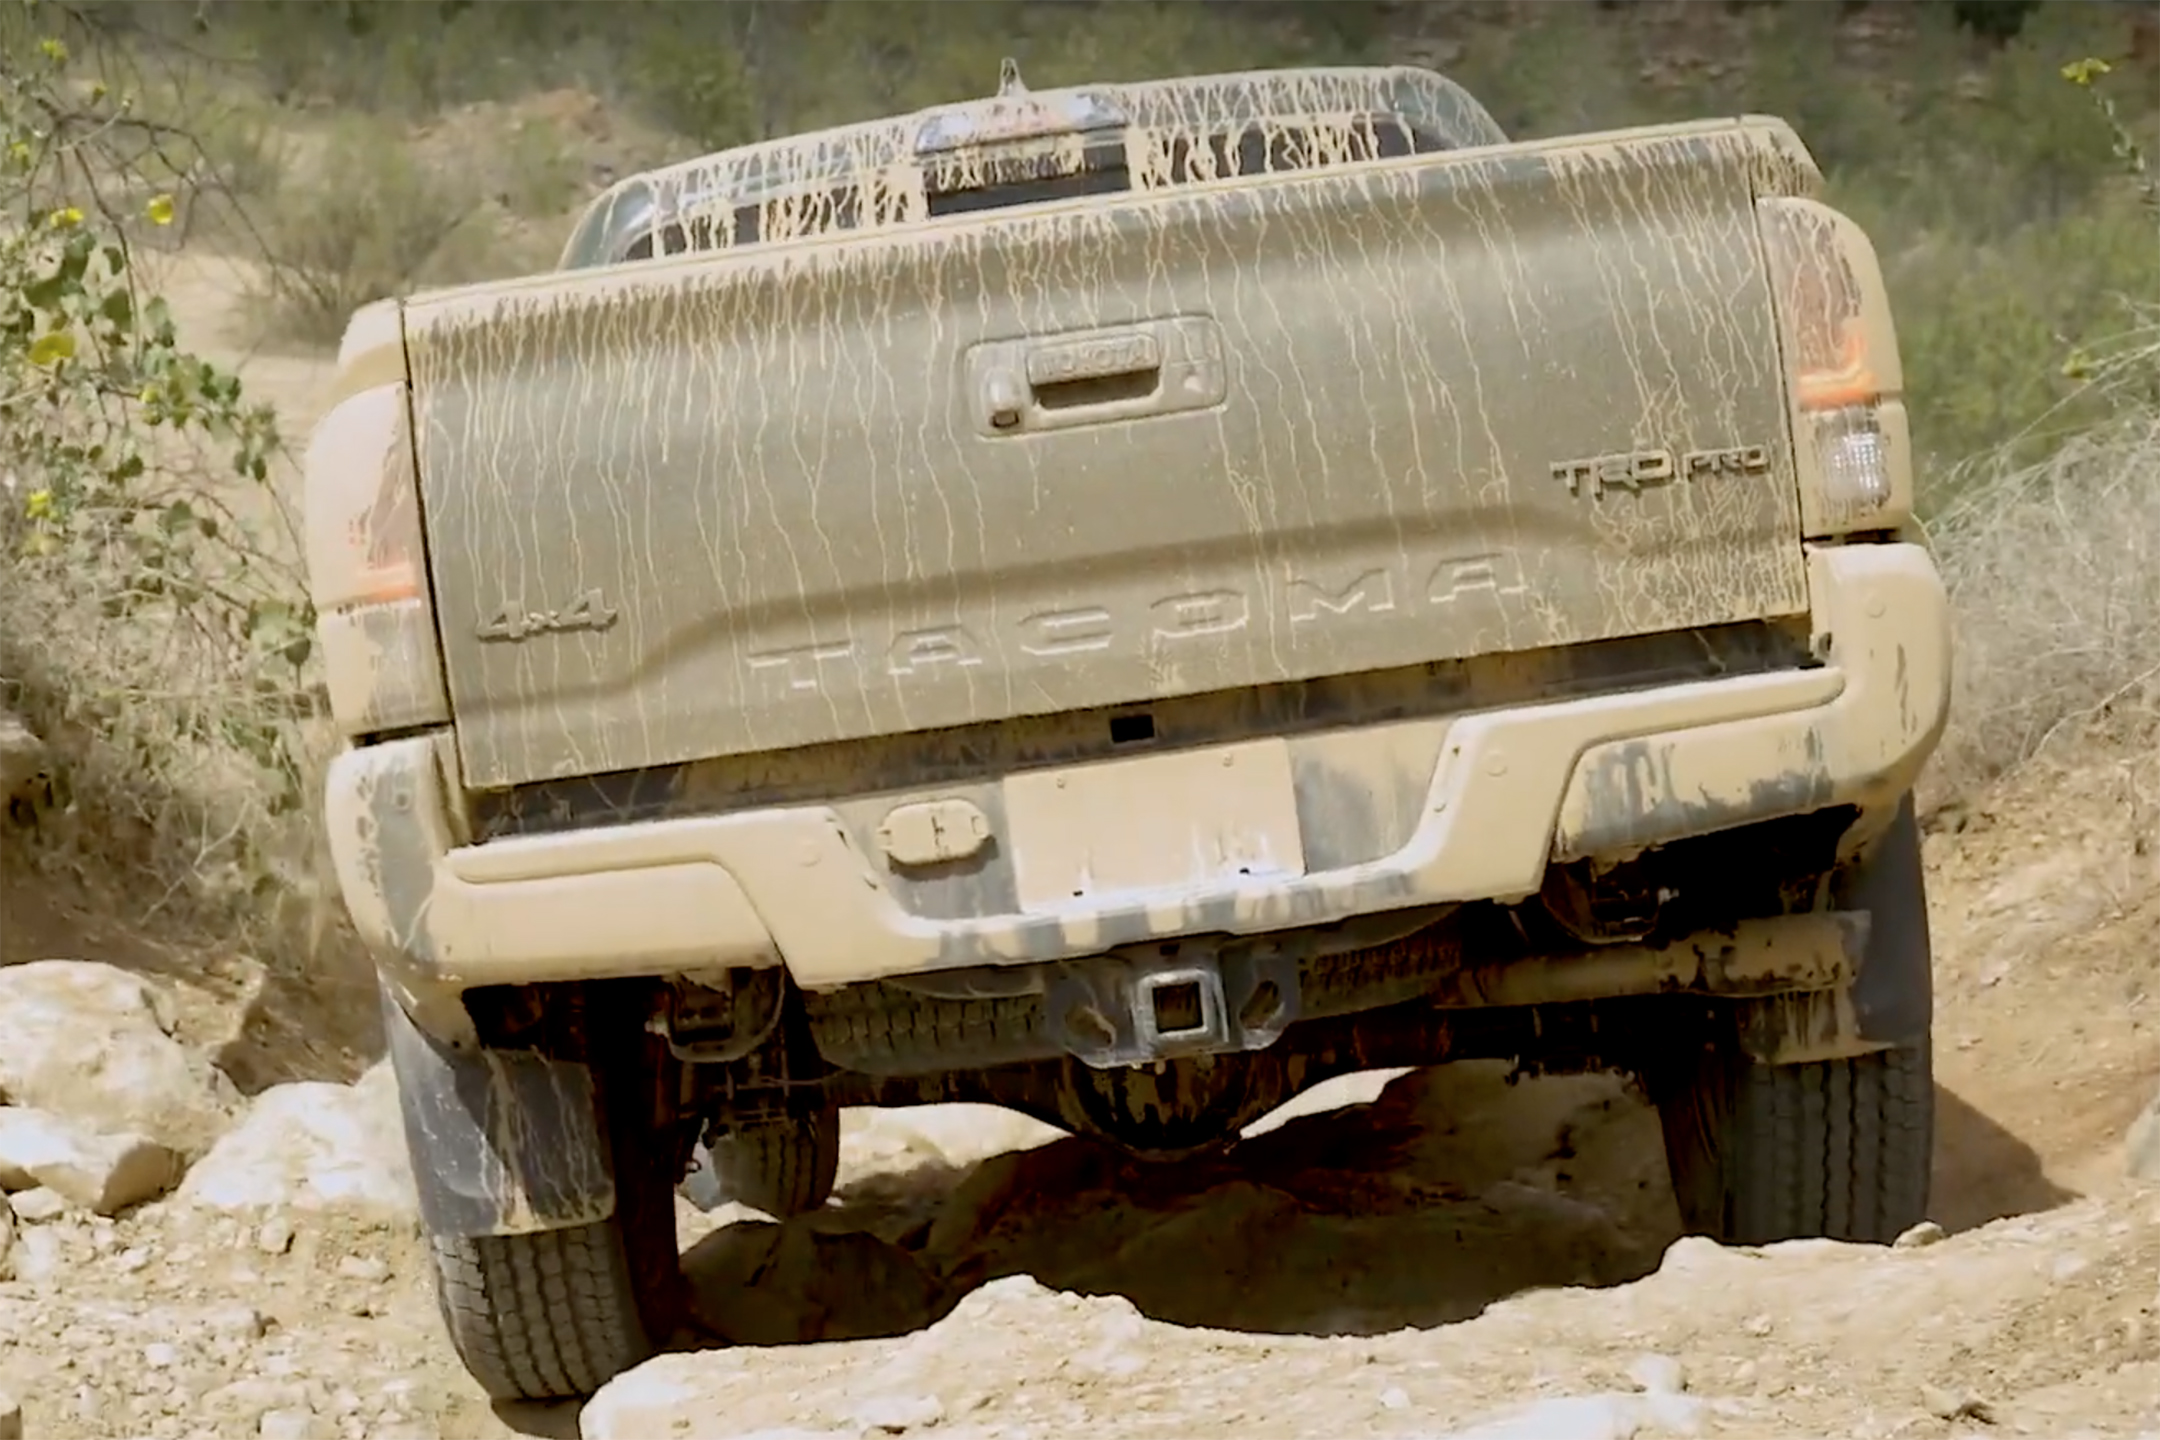 2020 Toyota Tacoma Video: We Get Down 'n' Dirty Down South